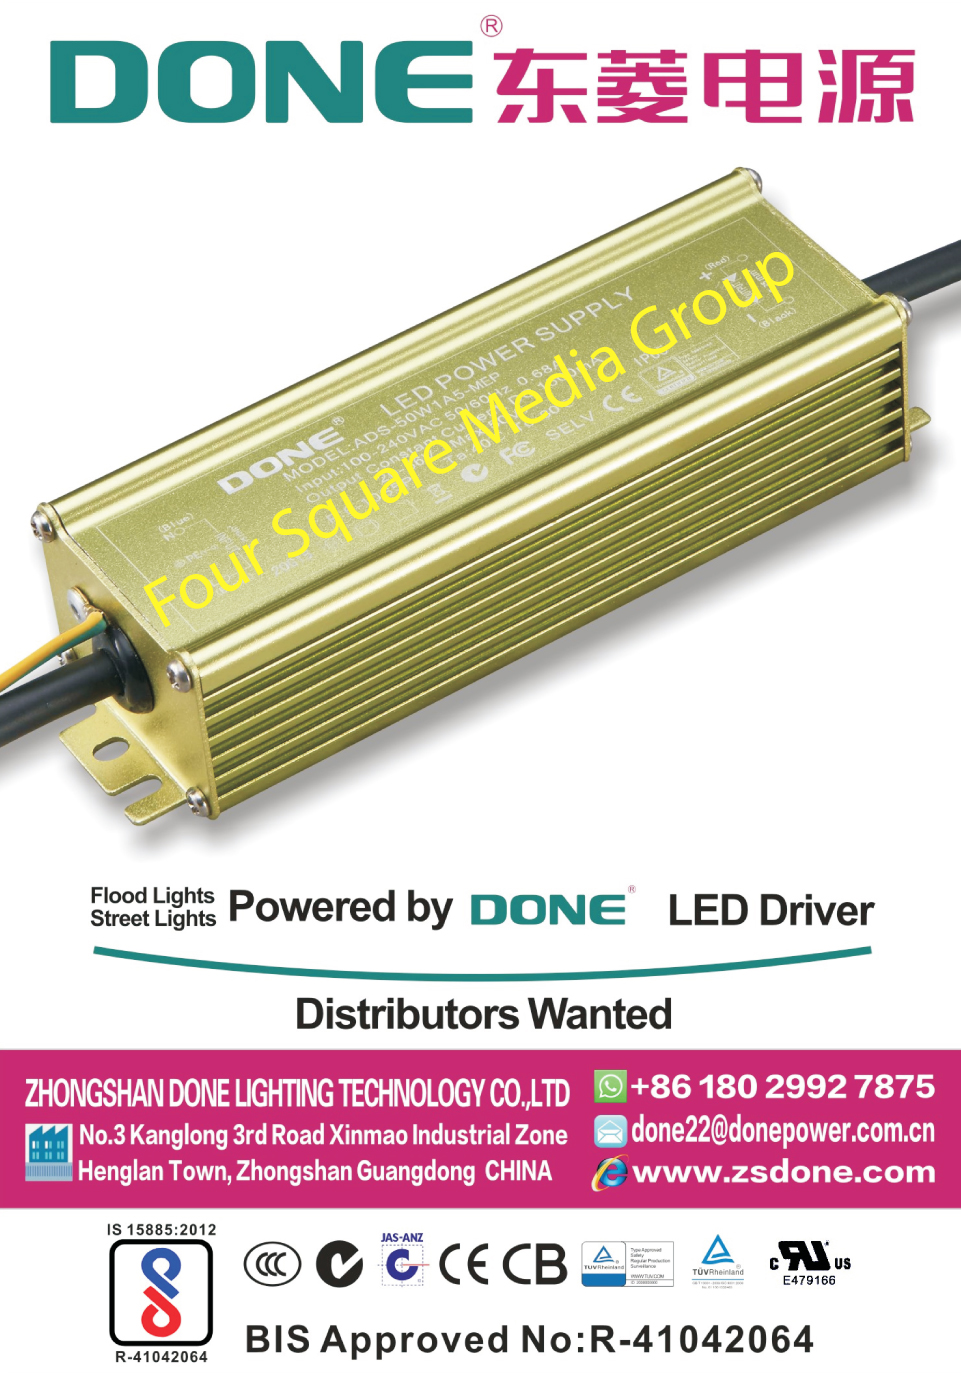 Led Drivers, Led Light Drivers, Flood Light Drivers, Street Light Drivers